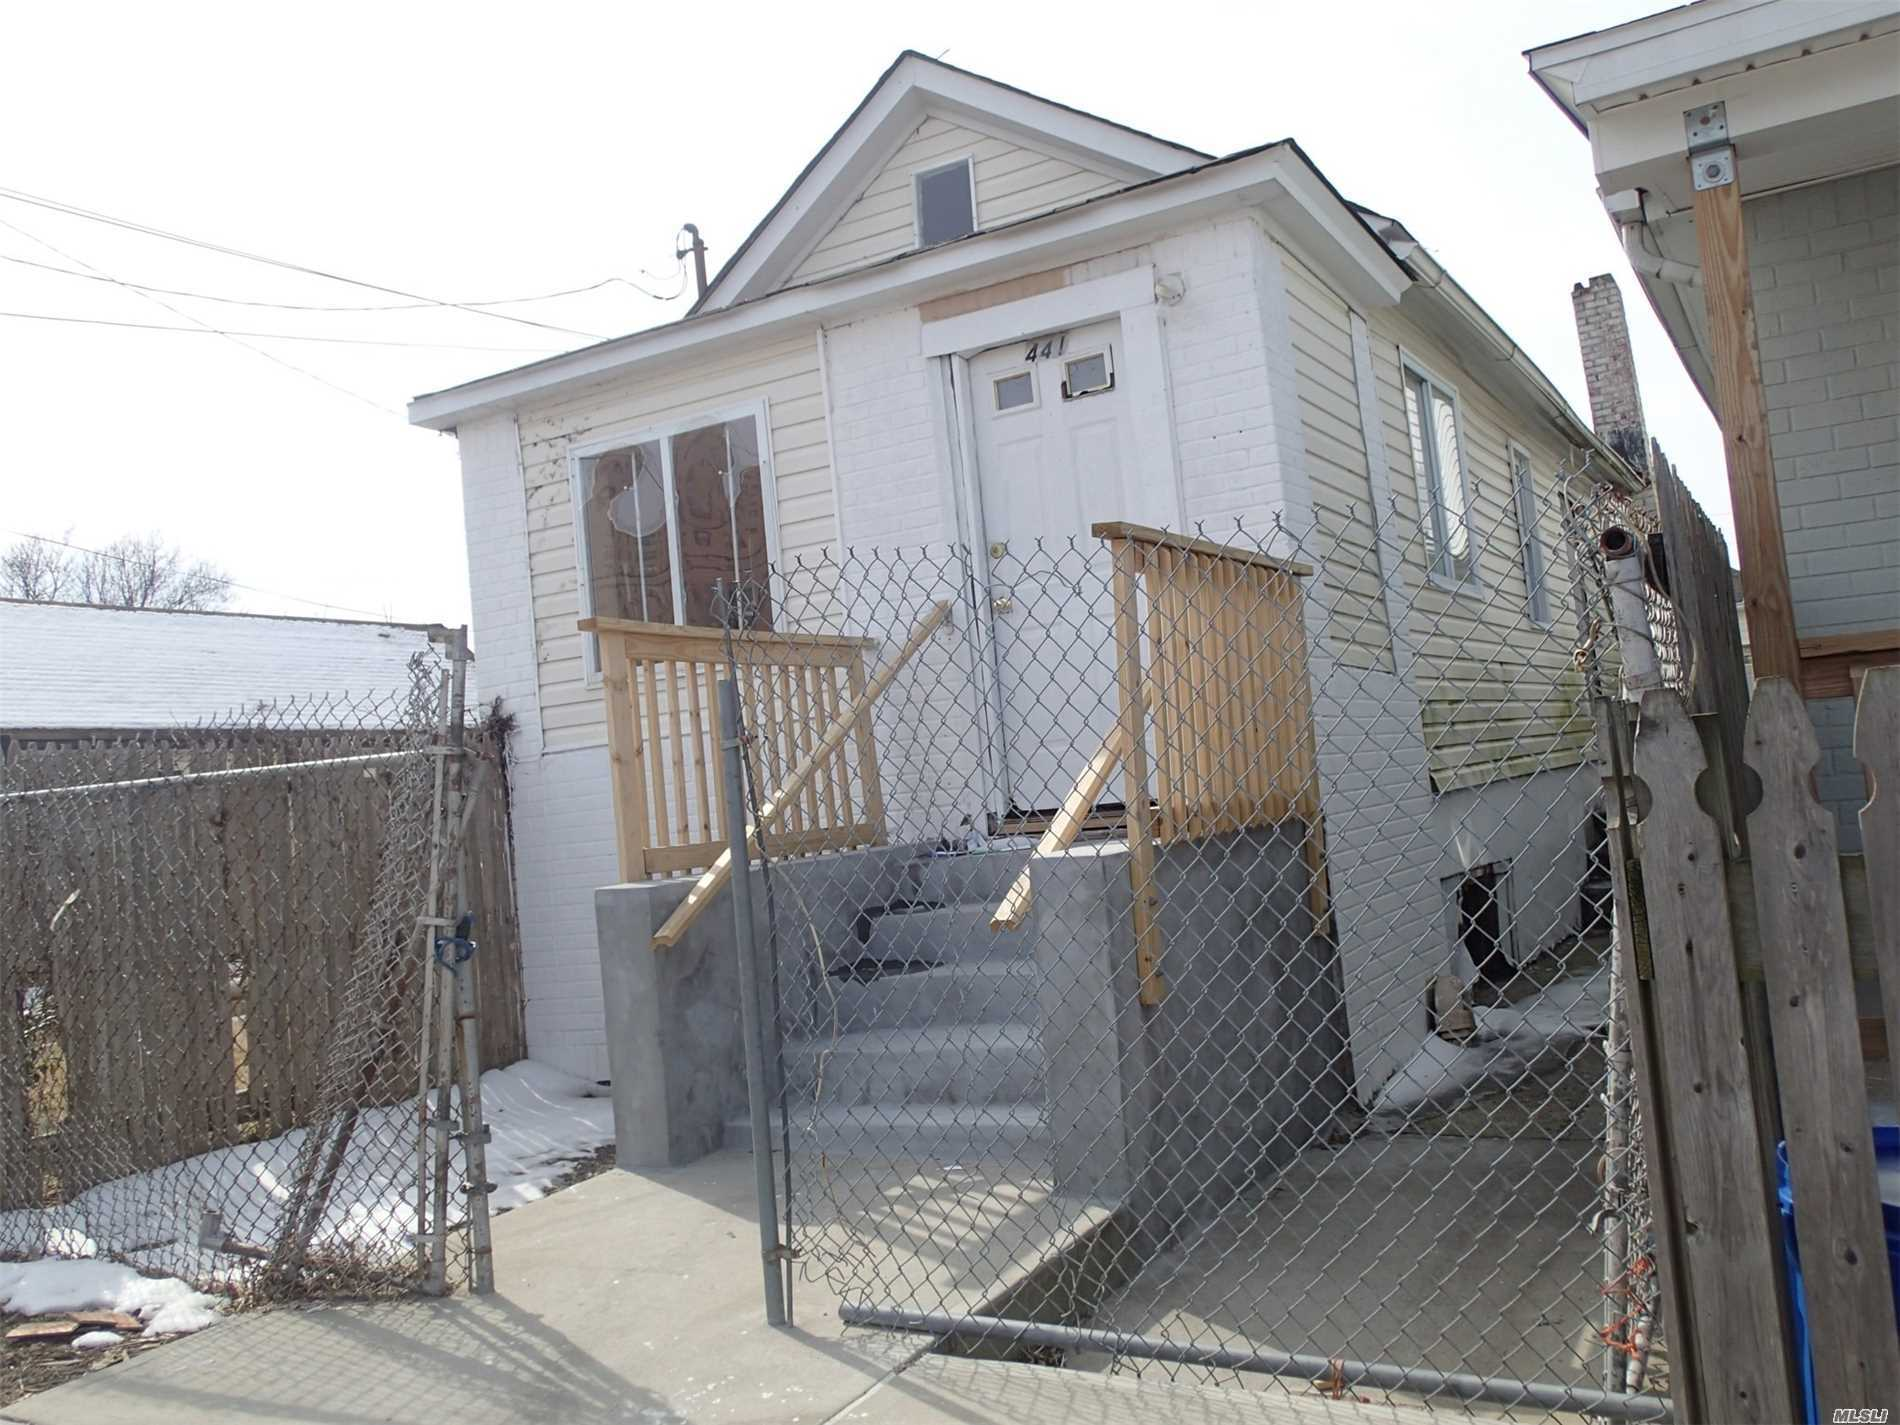 This Is A Fannie Mae Homepath Property. Amazing Multi-Family Opportunity! Featuring 2 Buildings On The Same Lot, Let This 2-Family Property Be Your Ticket To Additional Income! Building 1 Is A 3Br/ 1 Bath And Building 2 Is A 2Br/ 1 Bath. Live In One And Rent The Other, Or Rent Them Both! Close Access To Bayswater Park, Rockaway Community Park, The A Subway Train, Q22/ Qm17, And Supermarkets And Shops. Don't Miss Out!